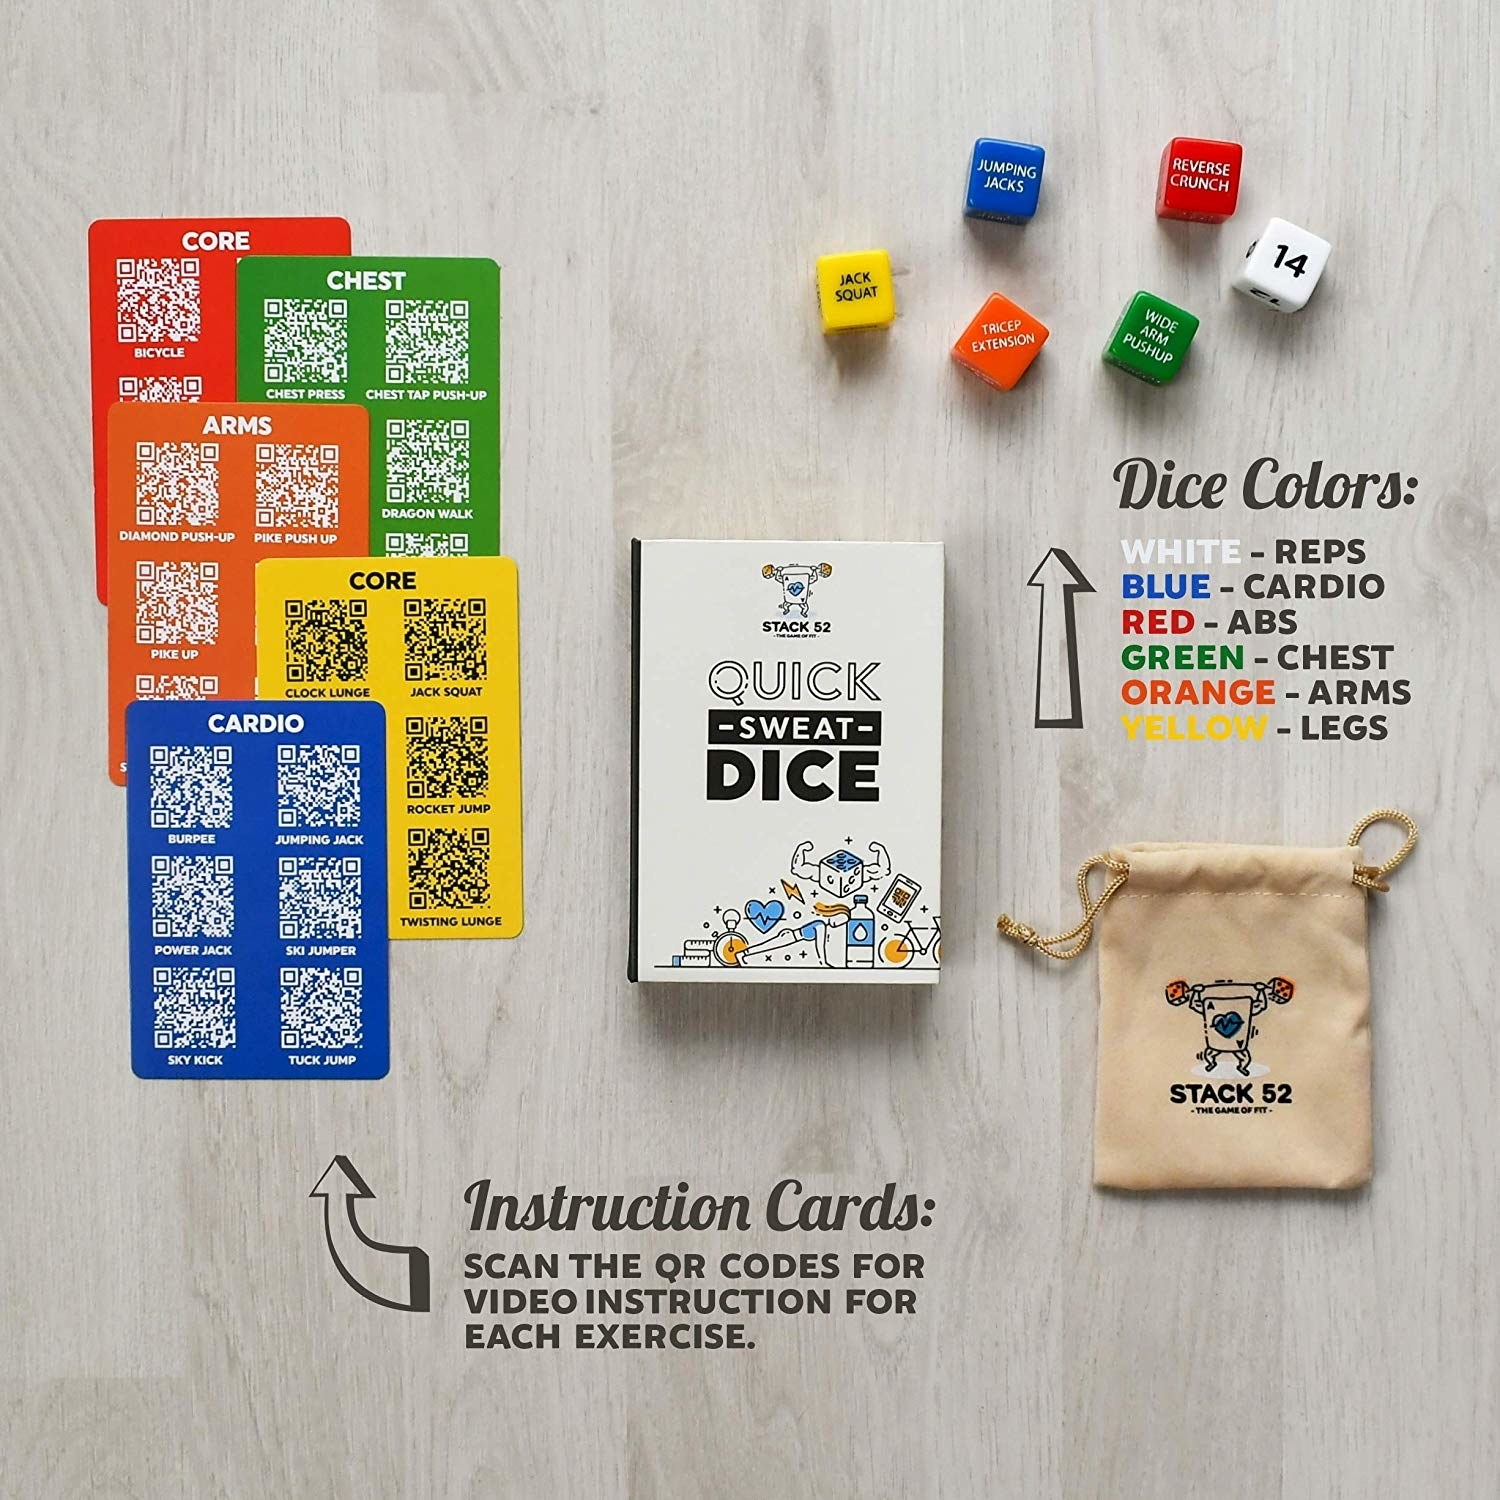 Instruction cards with QR codes and six dice, each in a different color